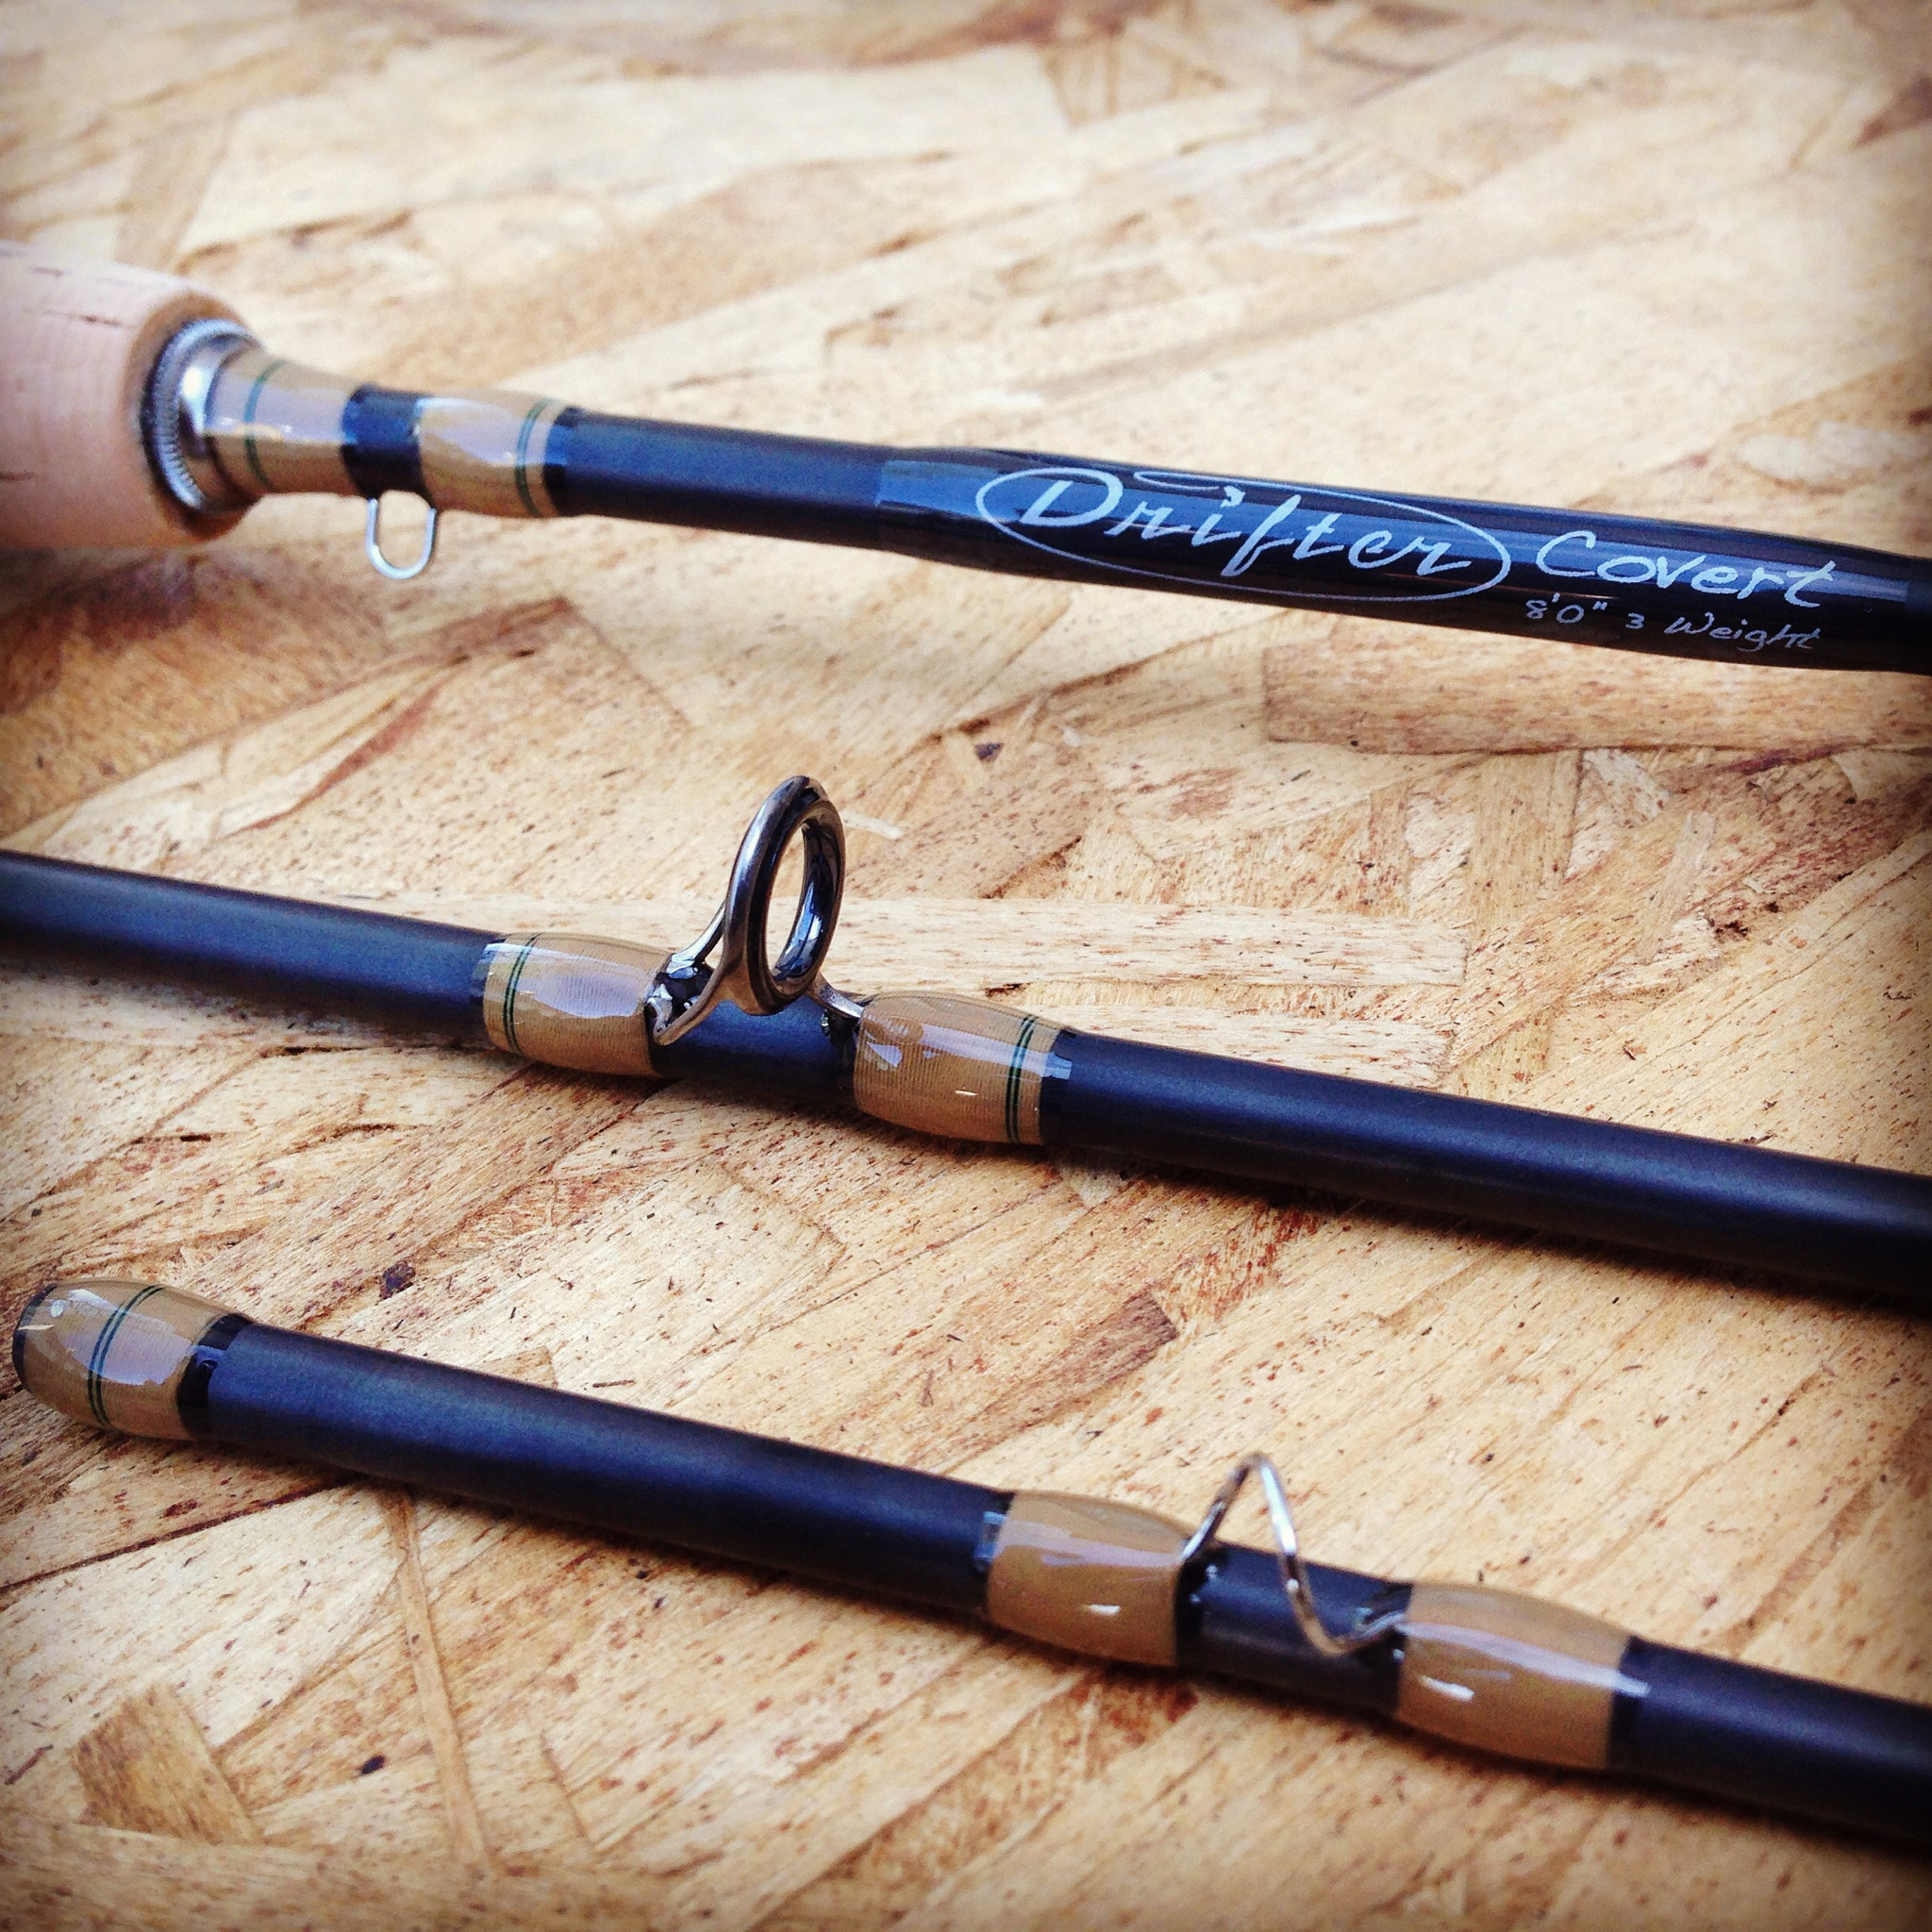 drifter intros new, 'ideal' fly rod for technical trout fisherman, Fly Fishing Bait